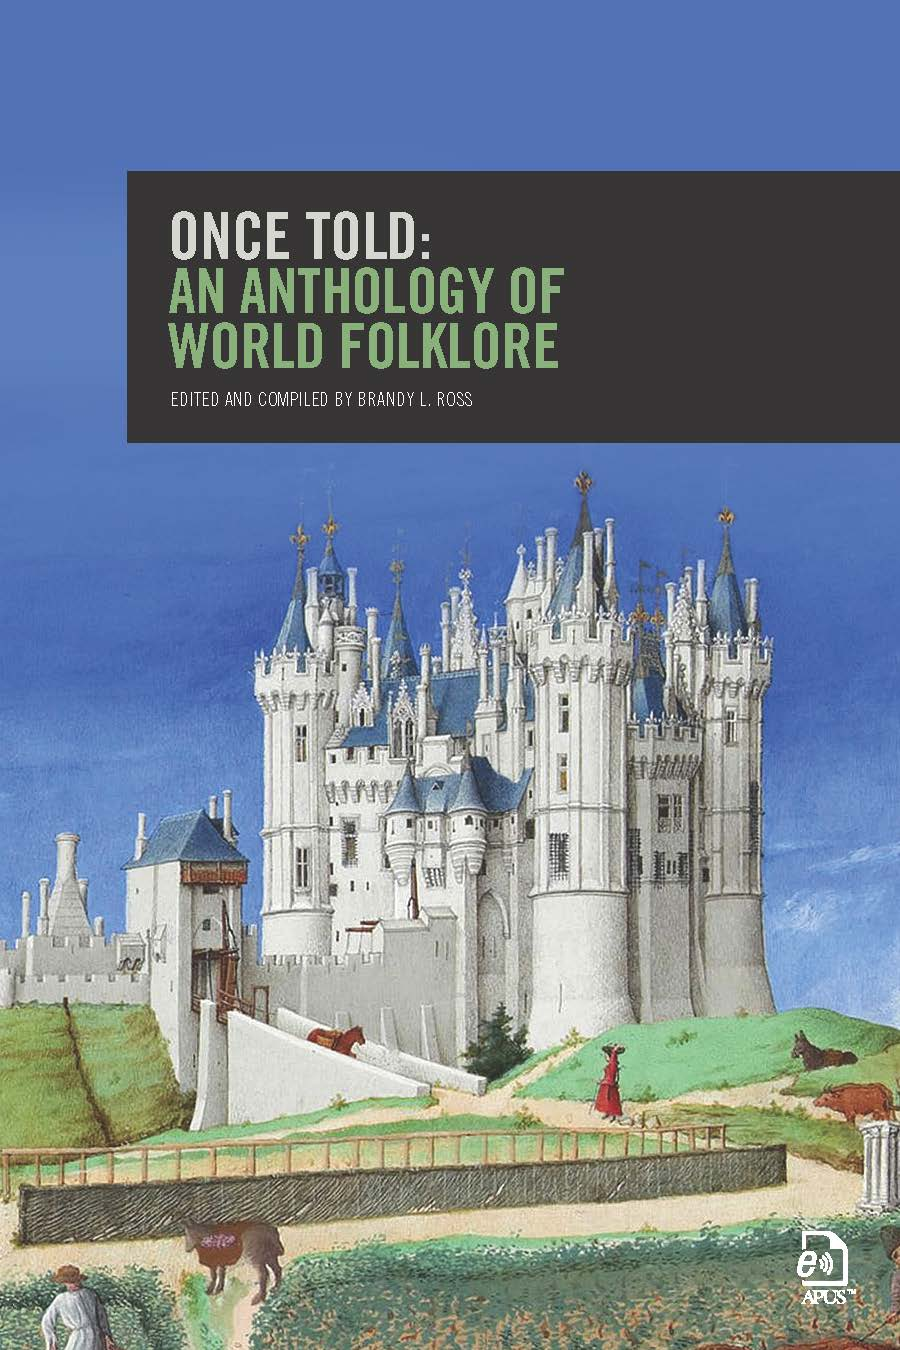 Once Told: An Anthology of World Folklore, Edited and Compiled by Brandy L. Ross. Cover shows a medieval castle on a blue background with workers doing chores around it.